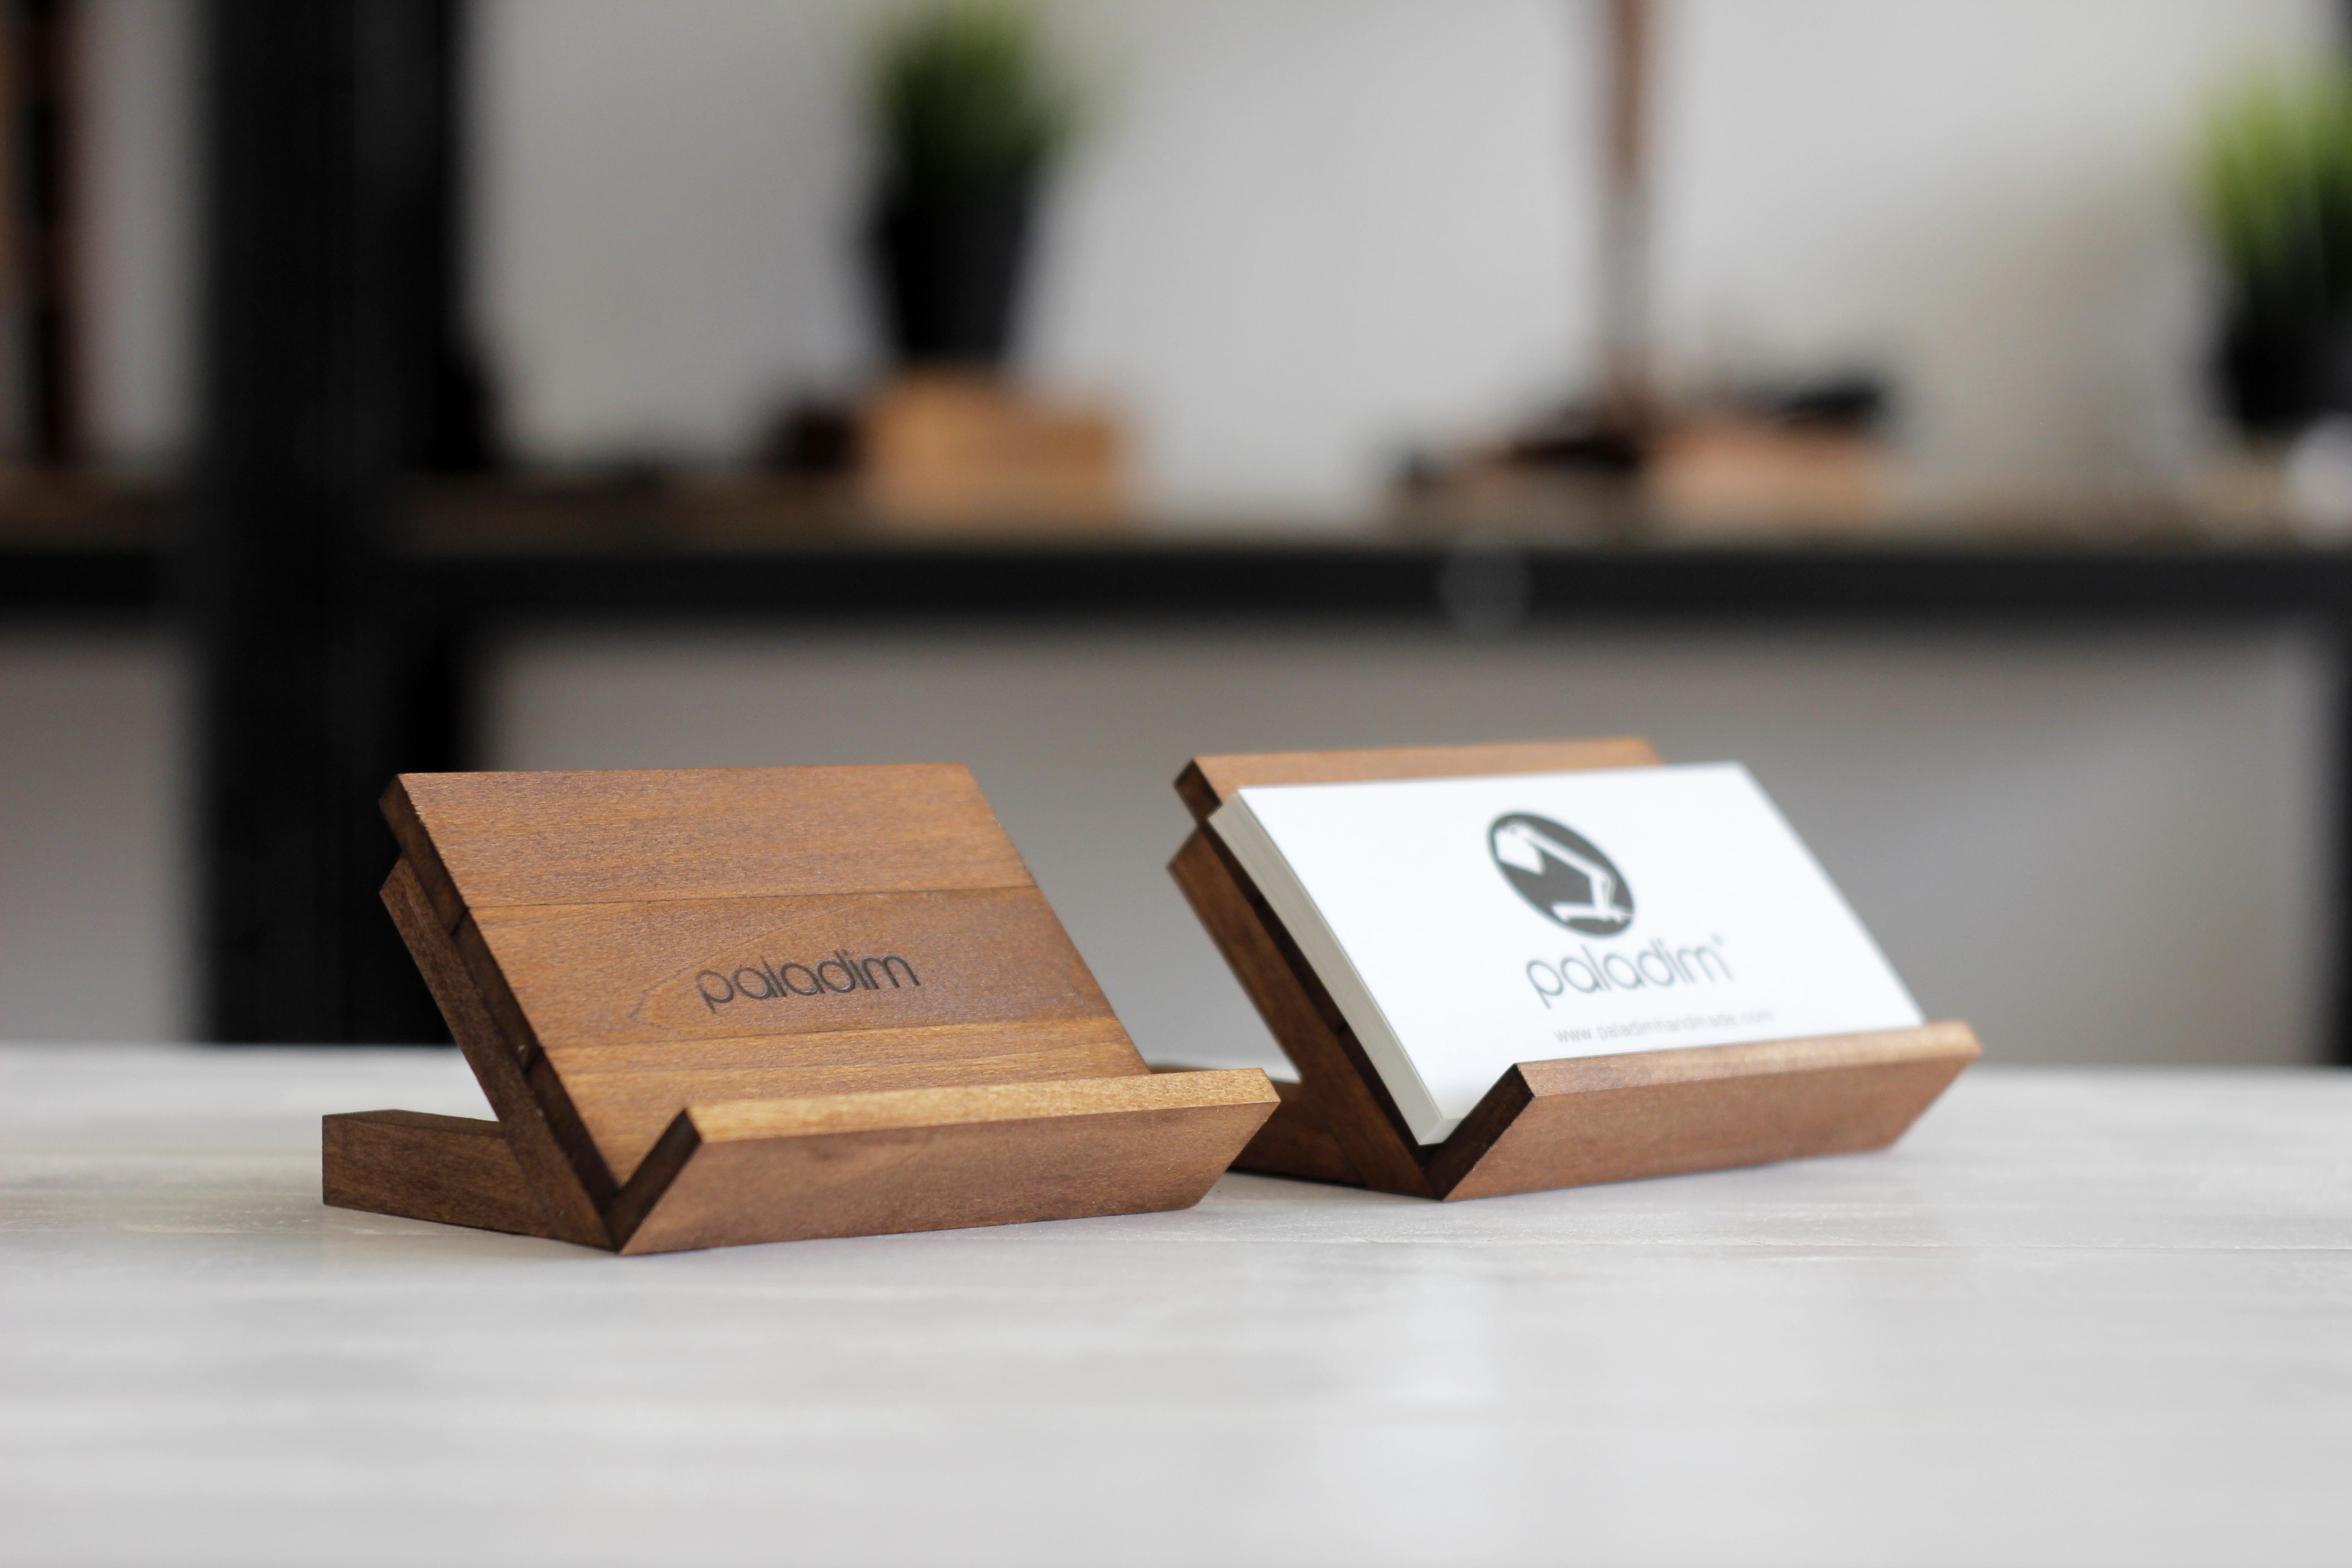 Handmade business card holder gallery free business cards handmade business card holder image collections free business cards handmade business card holder gallery free business magicingreecefo Image collections